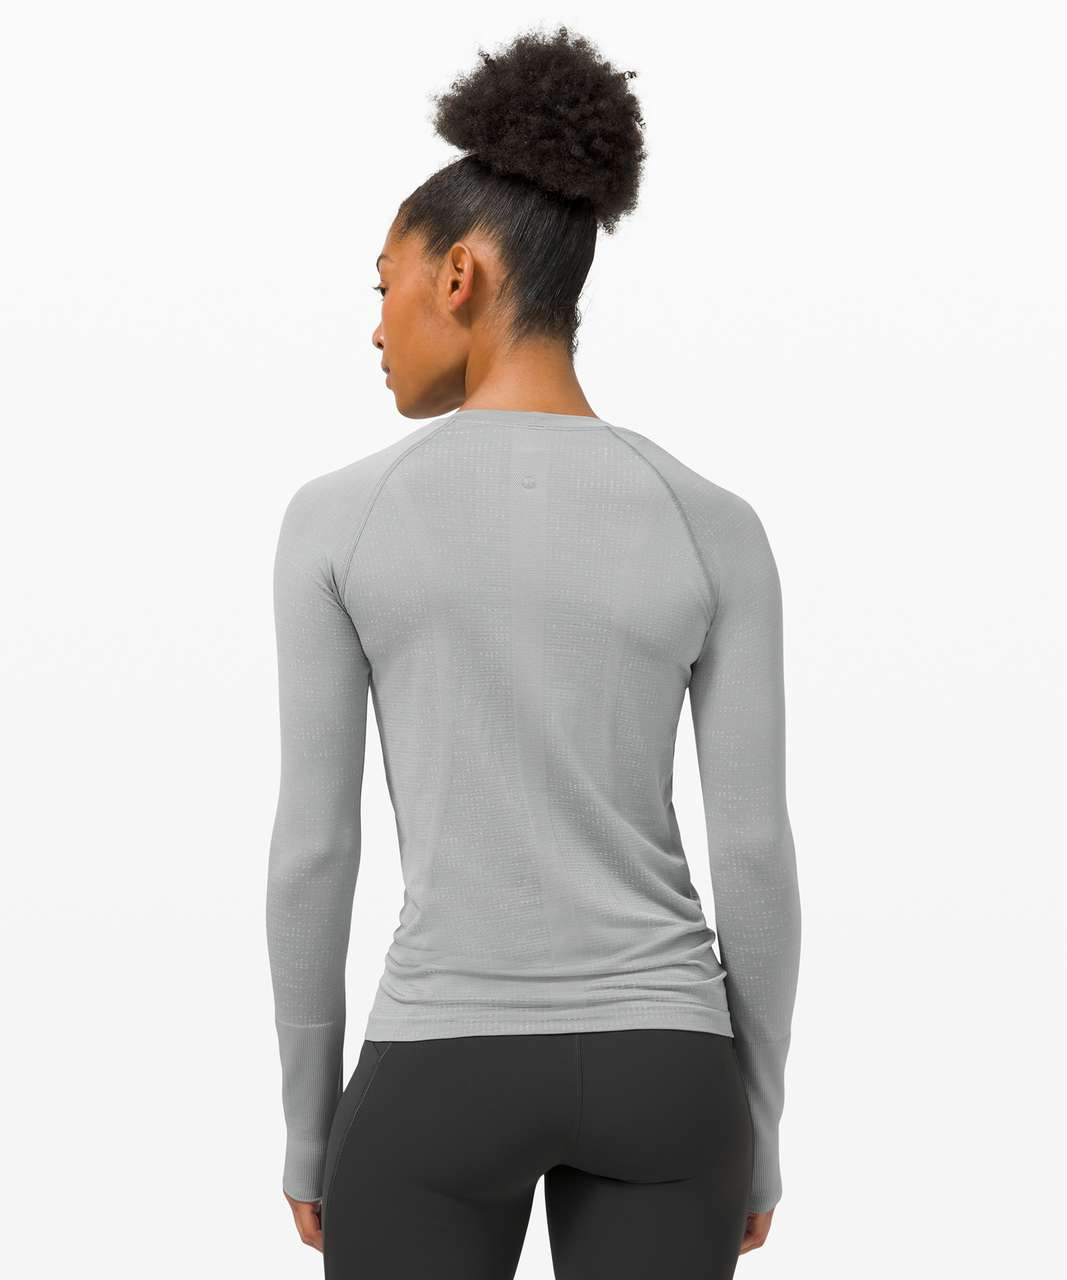 Lululemon Swiftly Tech Long Sleeve 2.0 - Disconnect Rhino Grey / Vapor